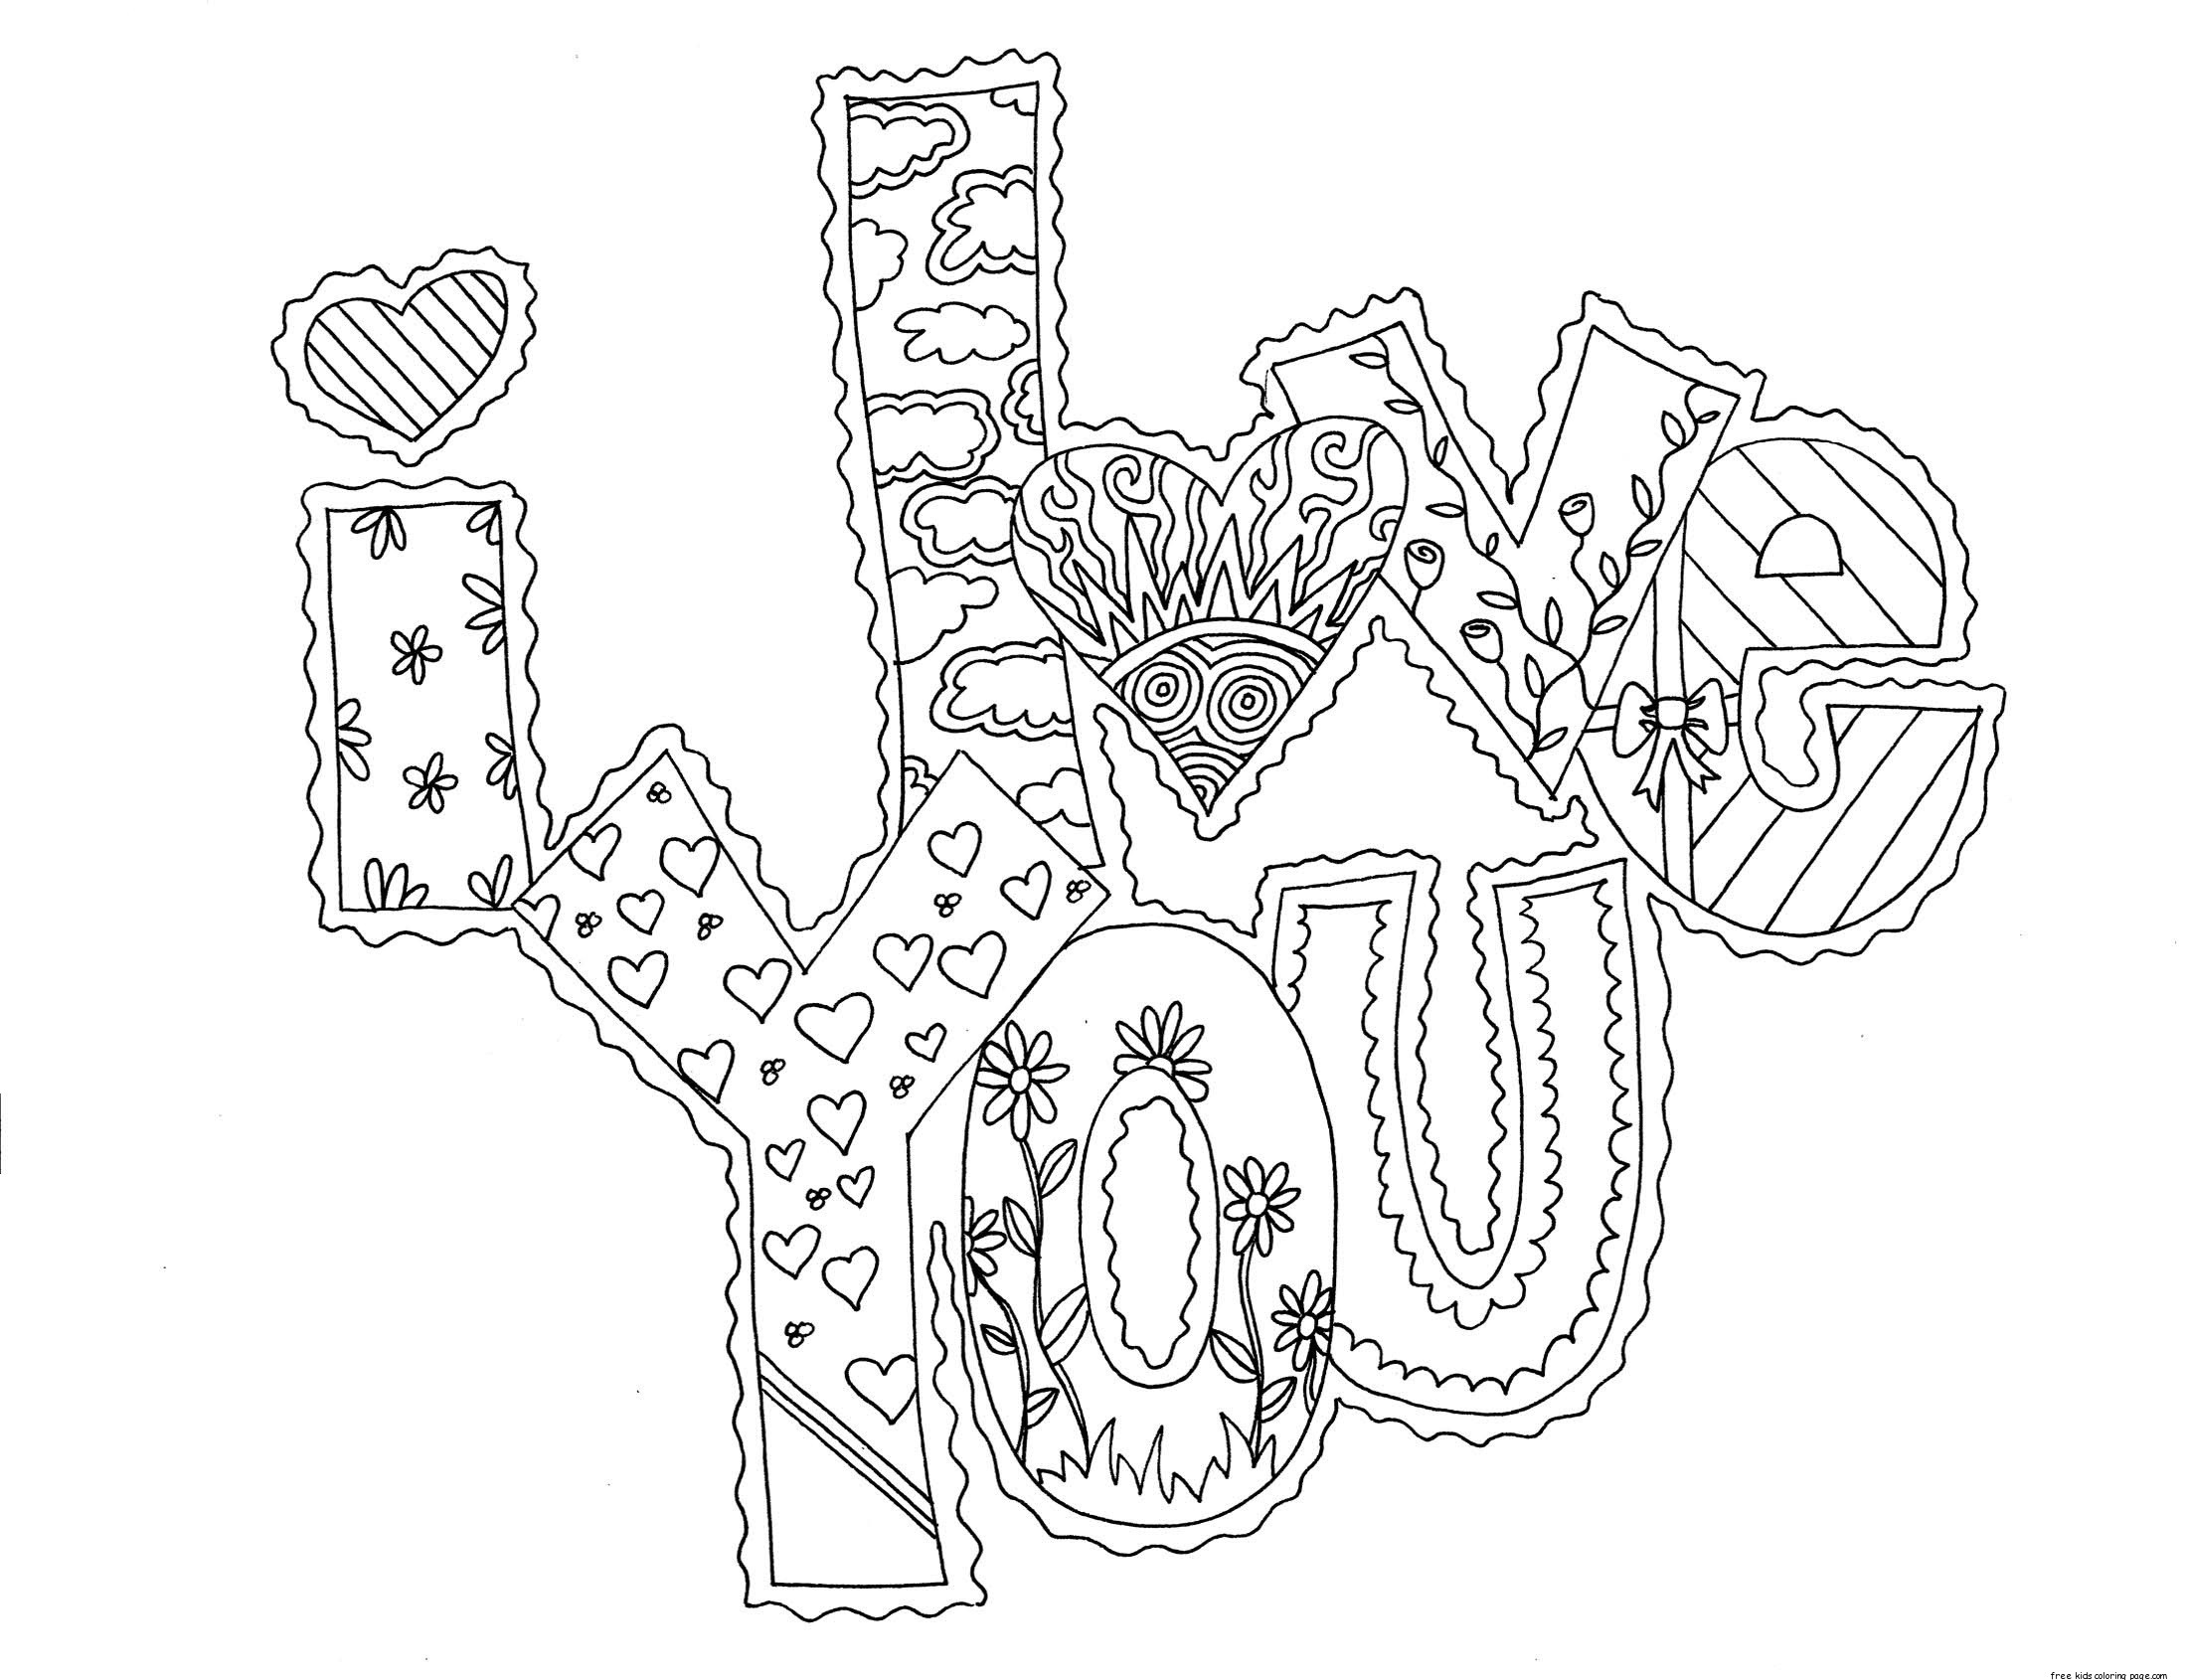 Printable Coloring Pages For Adults Love : Printable i love you my valentine cards coloring pagesfree